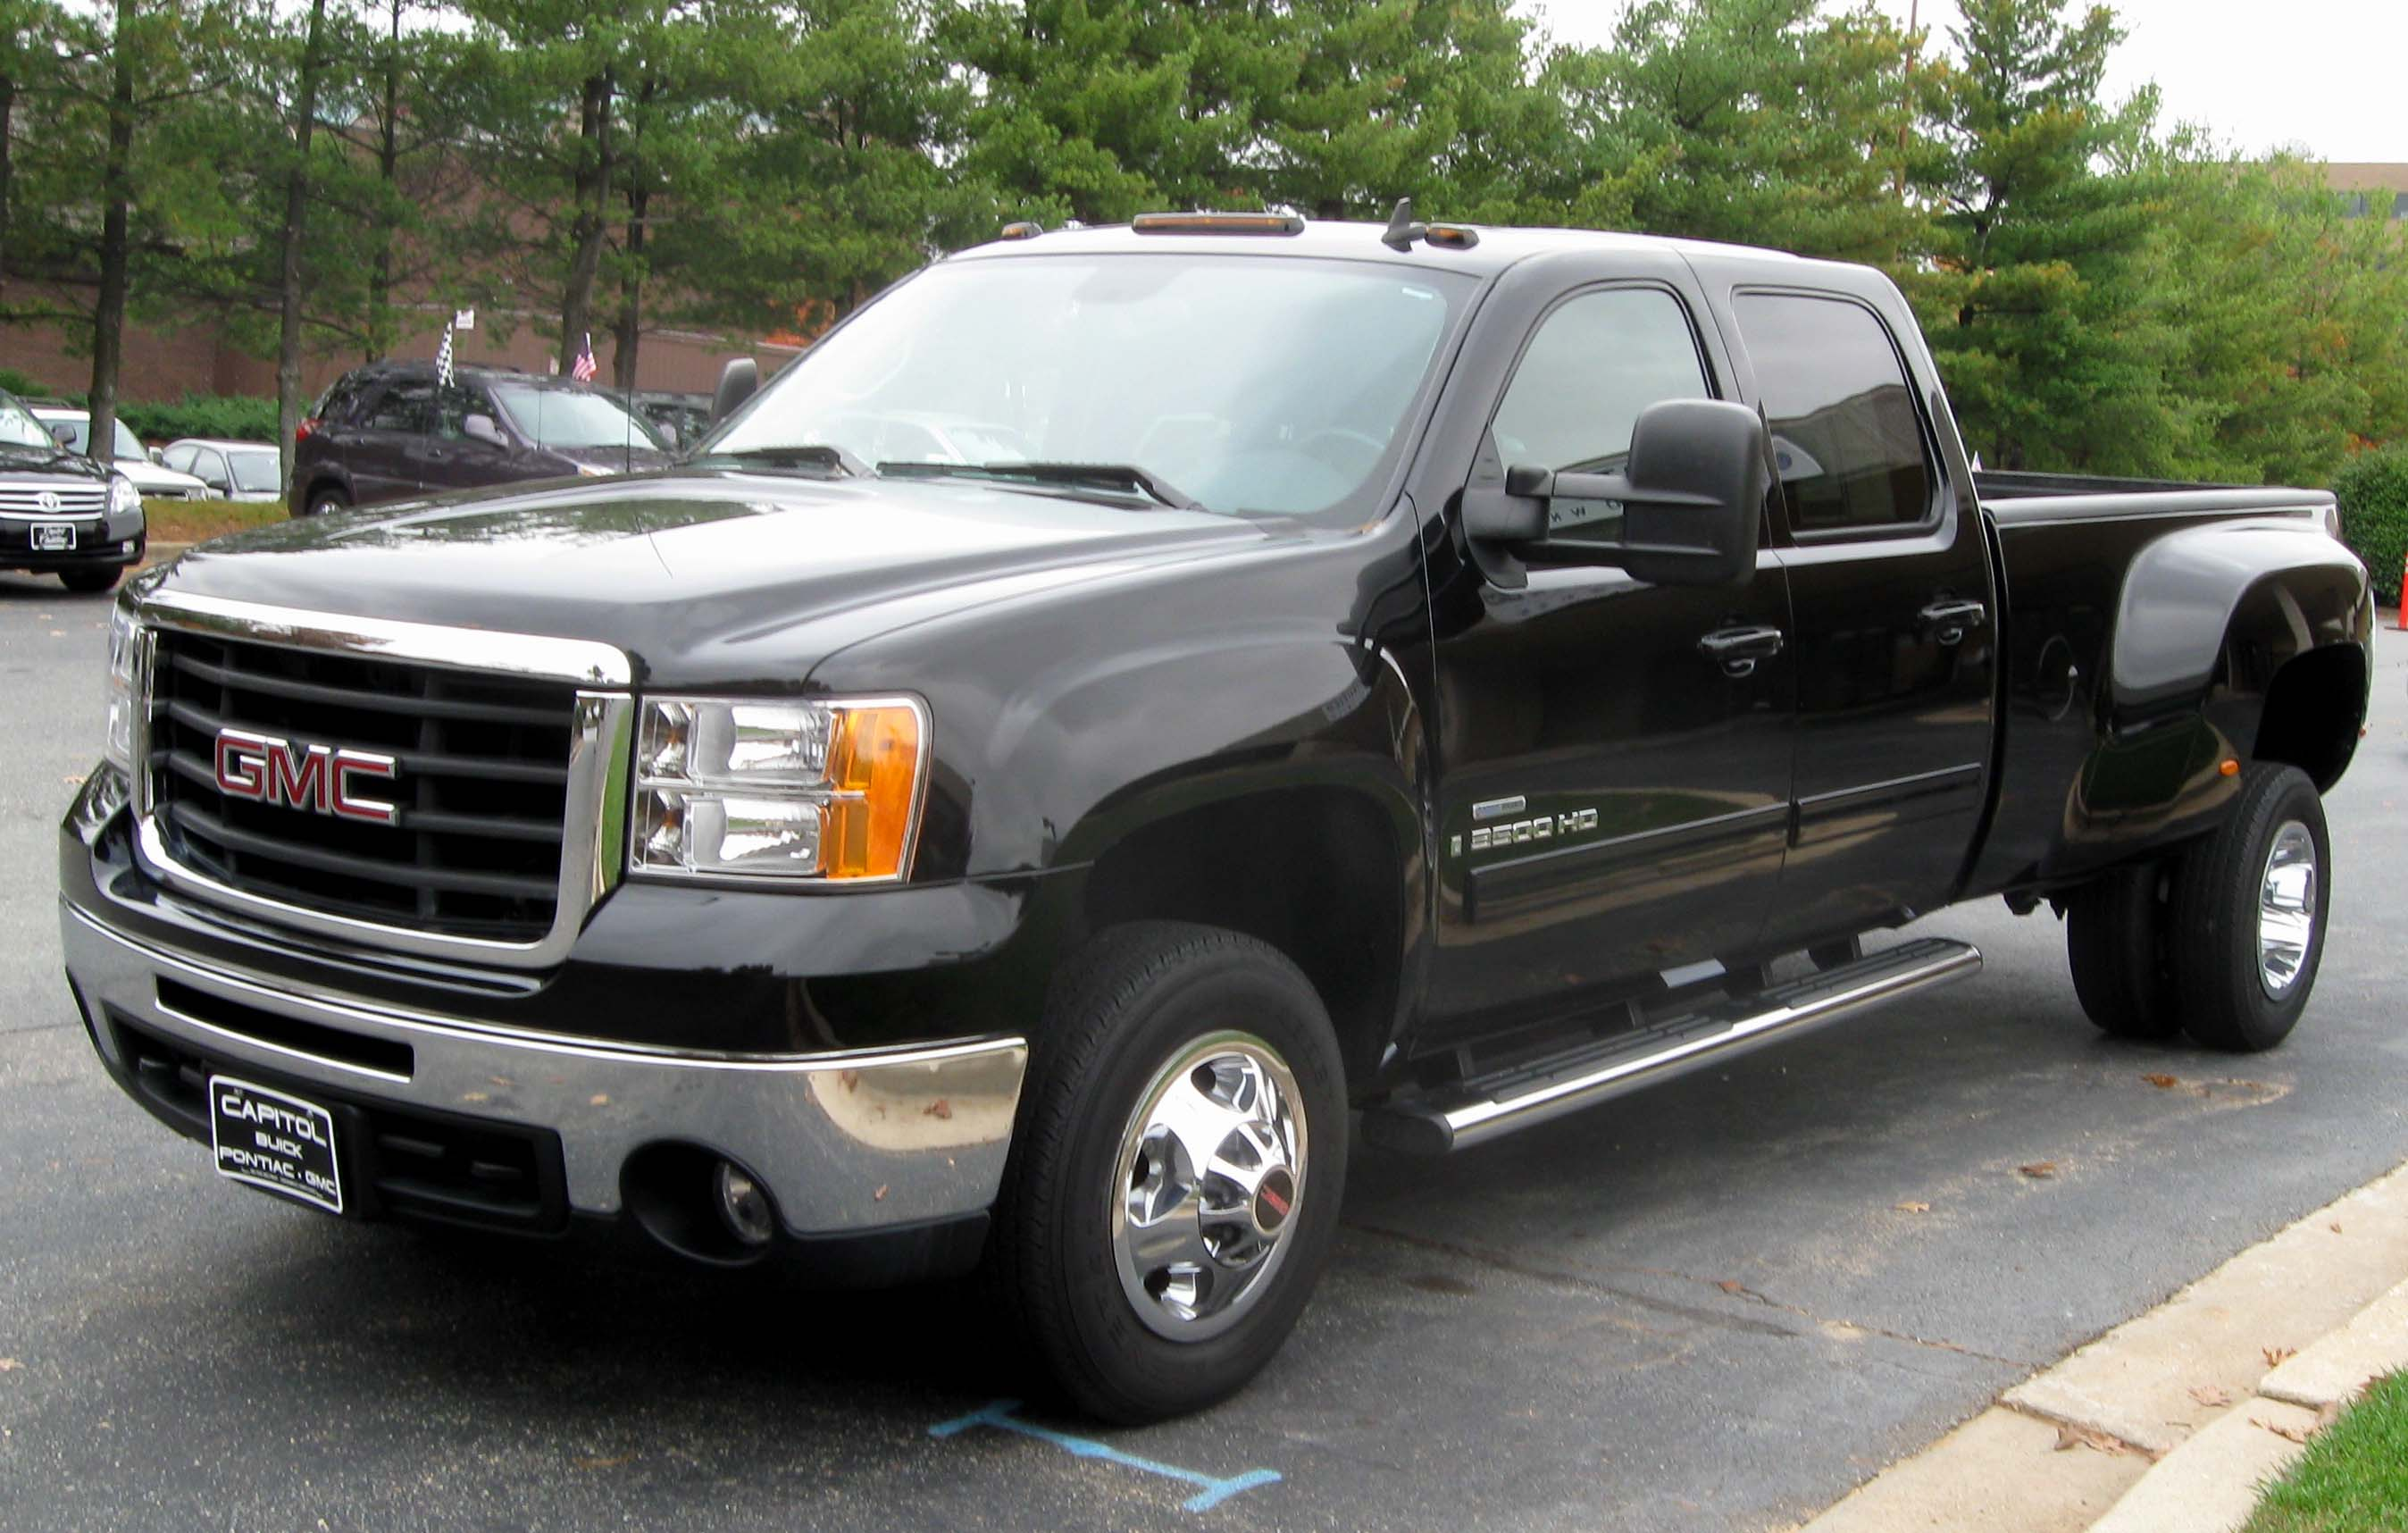 2009 Gmc Sierra 3500hd #1